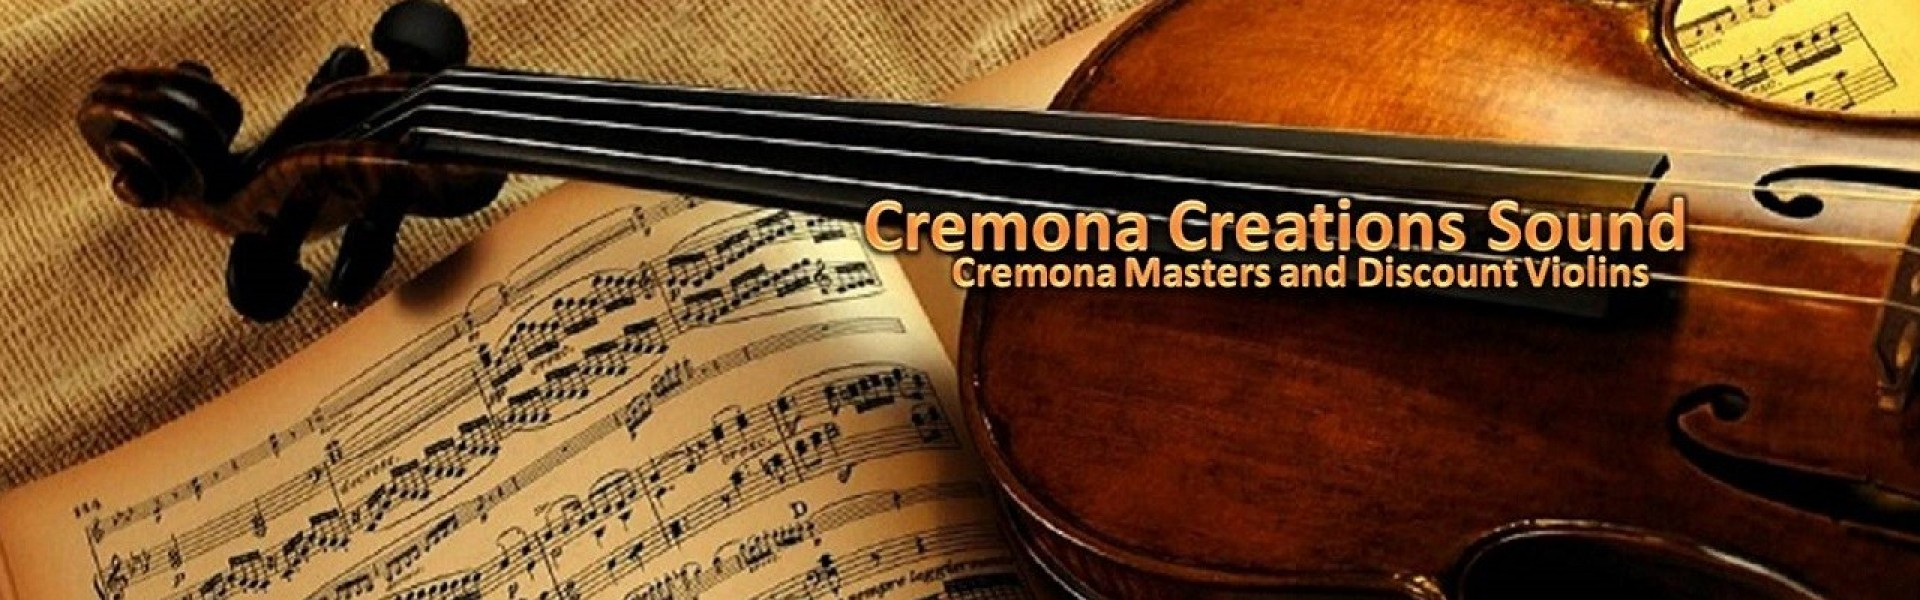 Cremona Creations Sound